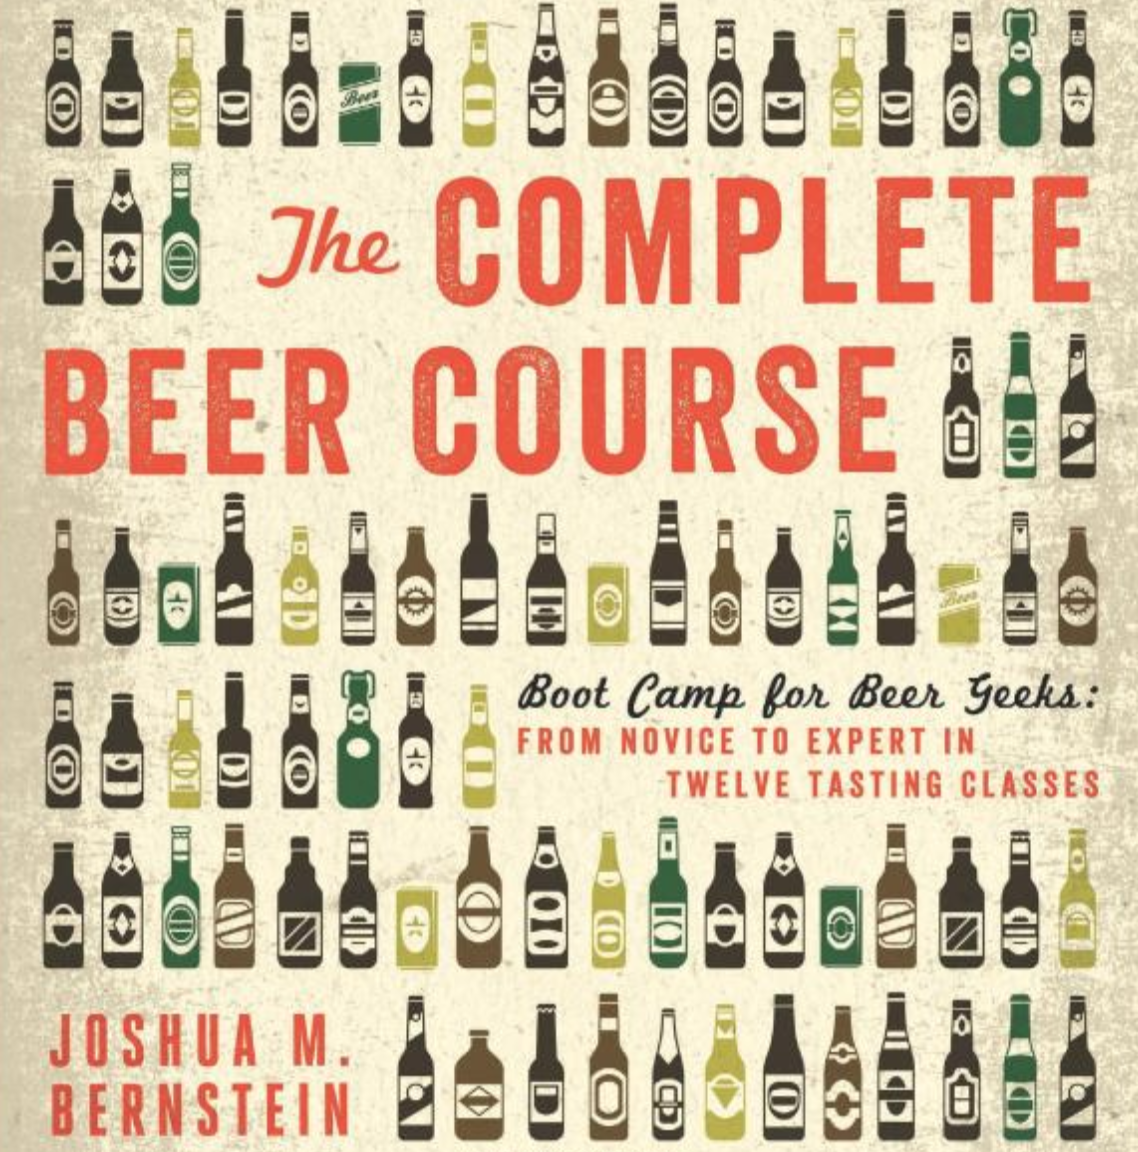 The Complete Beer Course: Boot Camp for Beer Geeks - It's a great time to be a beer drinker, but also the most confusing, thanks to the dizzying array of available draft beers. Joshua Bernstein's The Complete Beer Course is structured around a series of easy-to-follow classes that breaks down the elements that make beer's flavor spin into distinctively different and delicious directions.$23